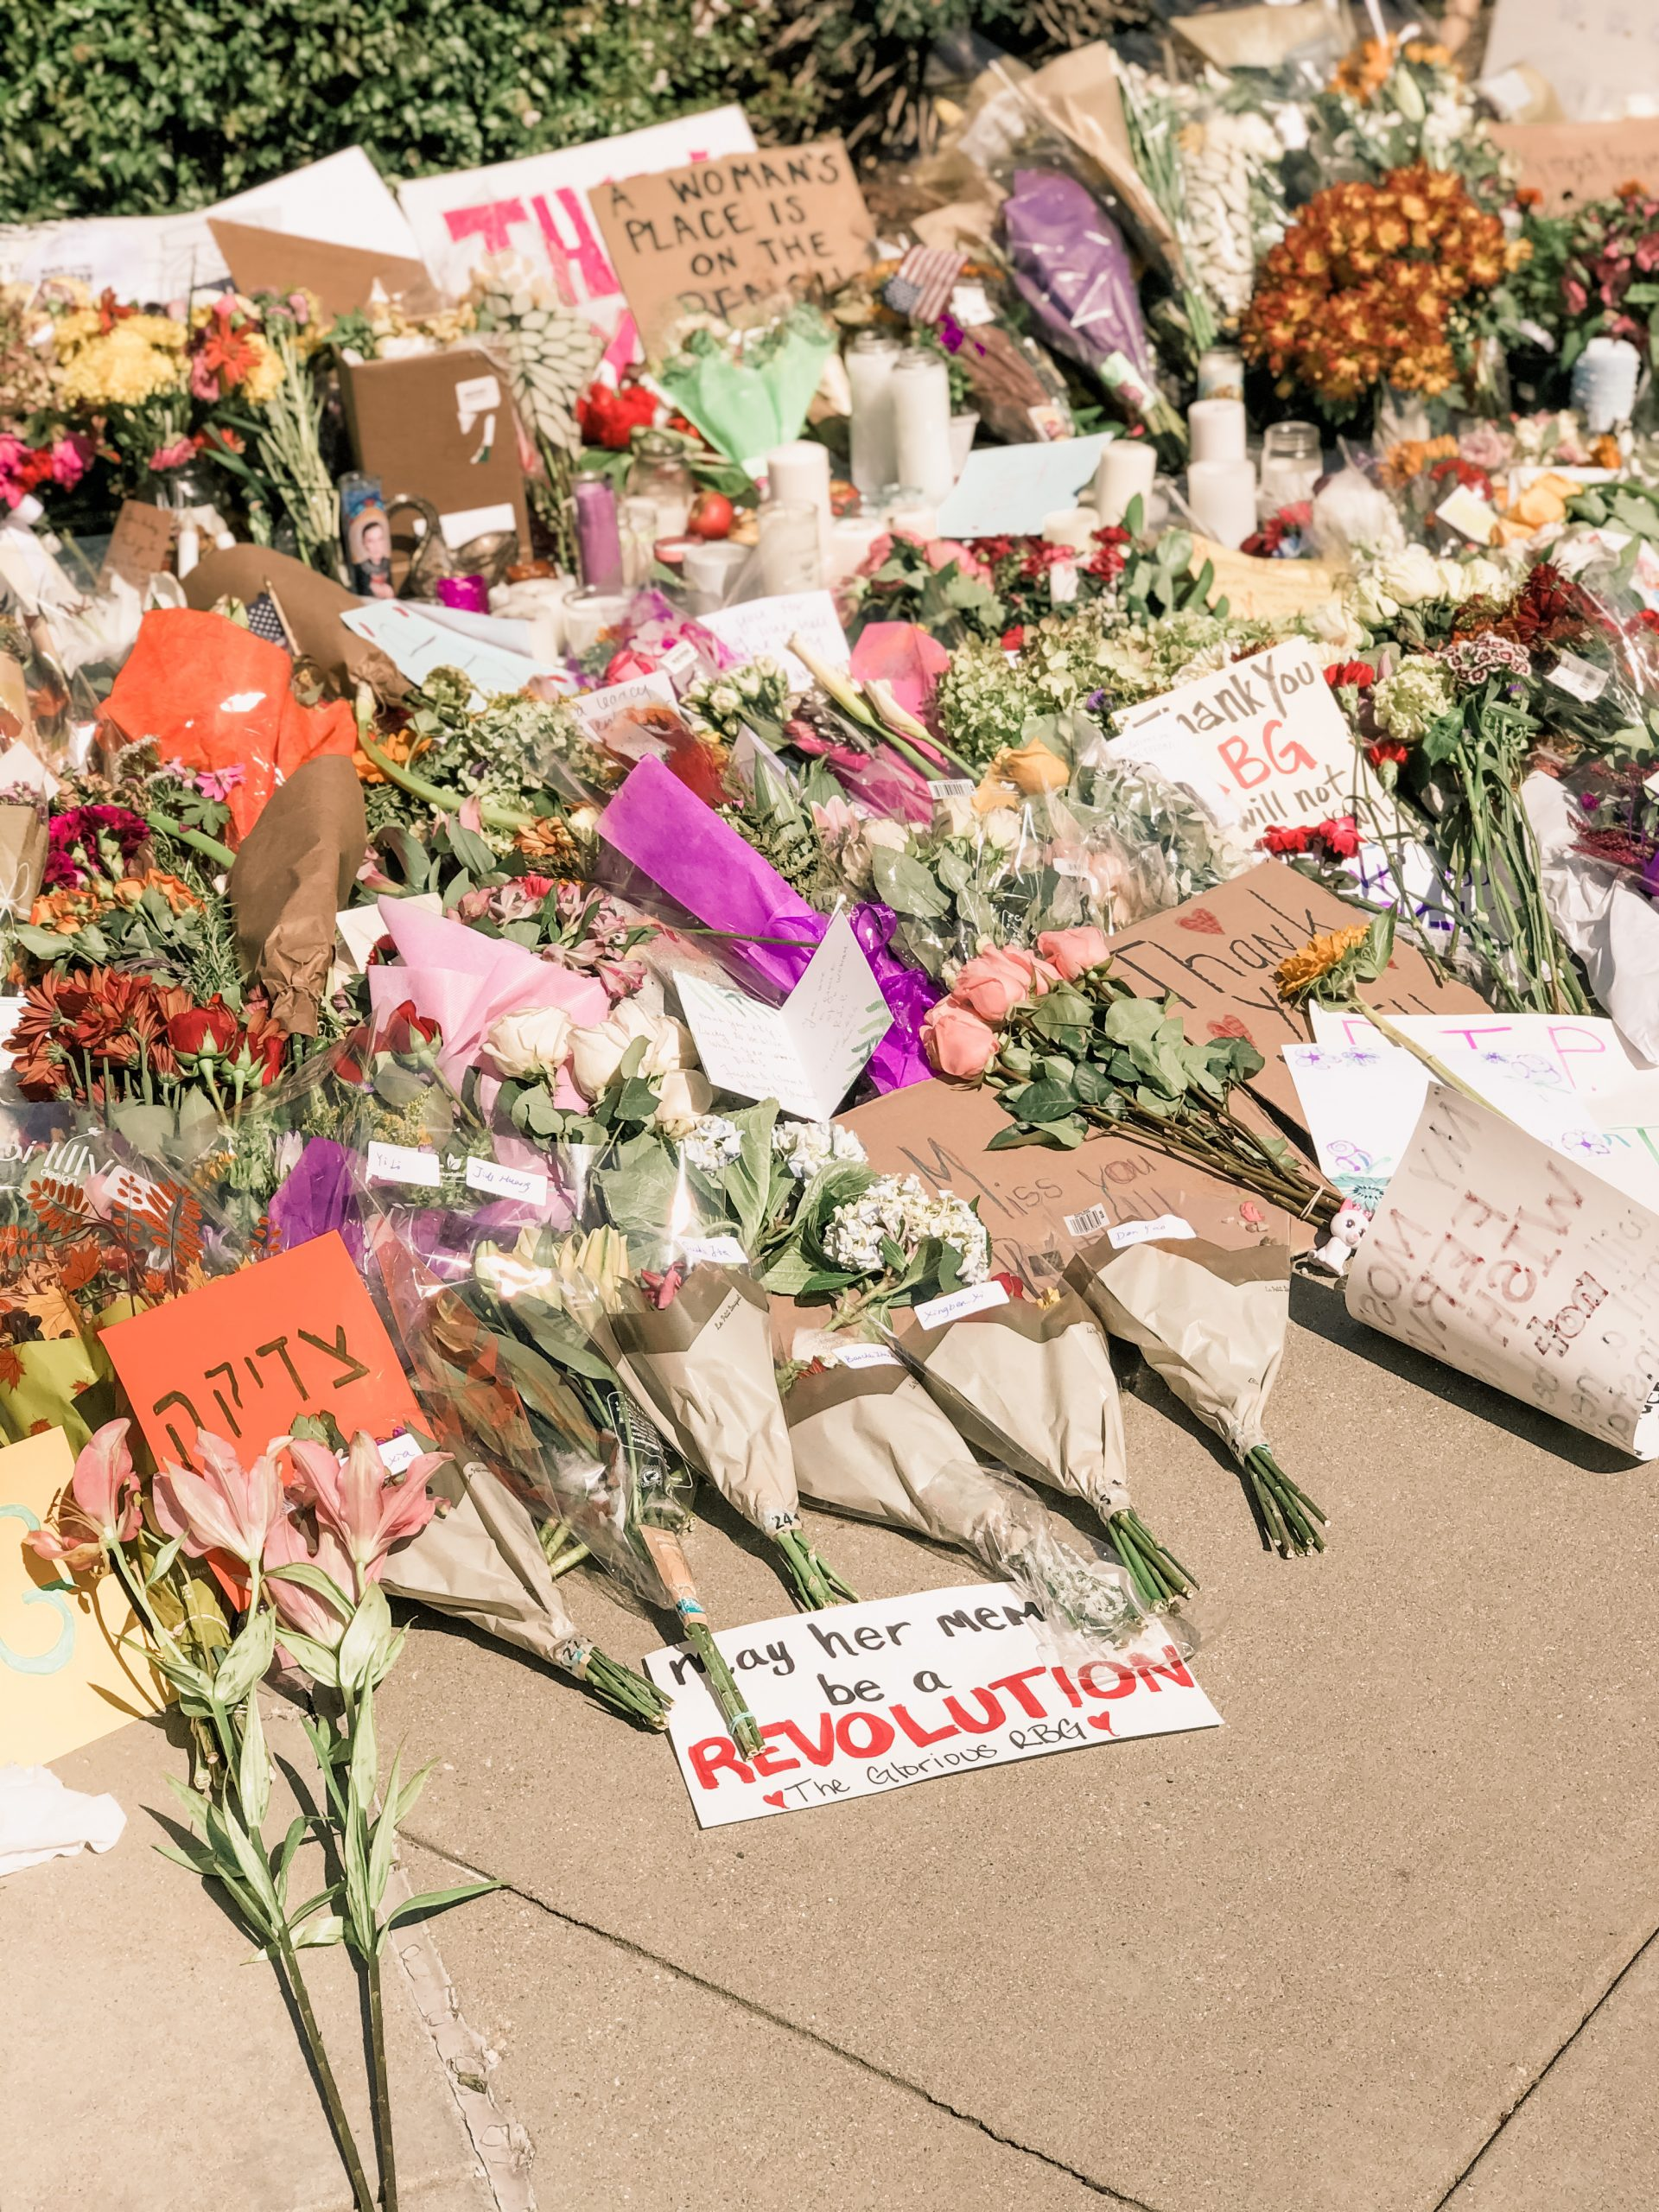 May her memory be a revolution RBG memorial at the Supreme Court